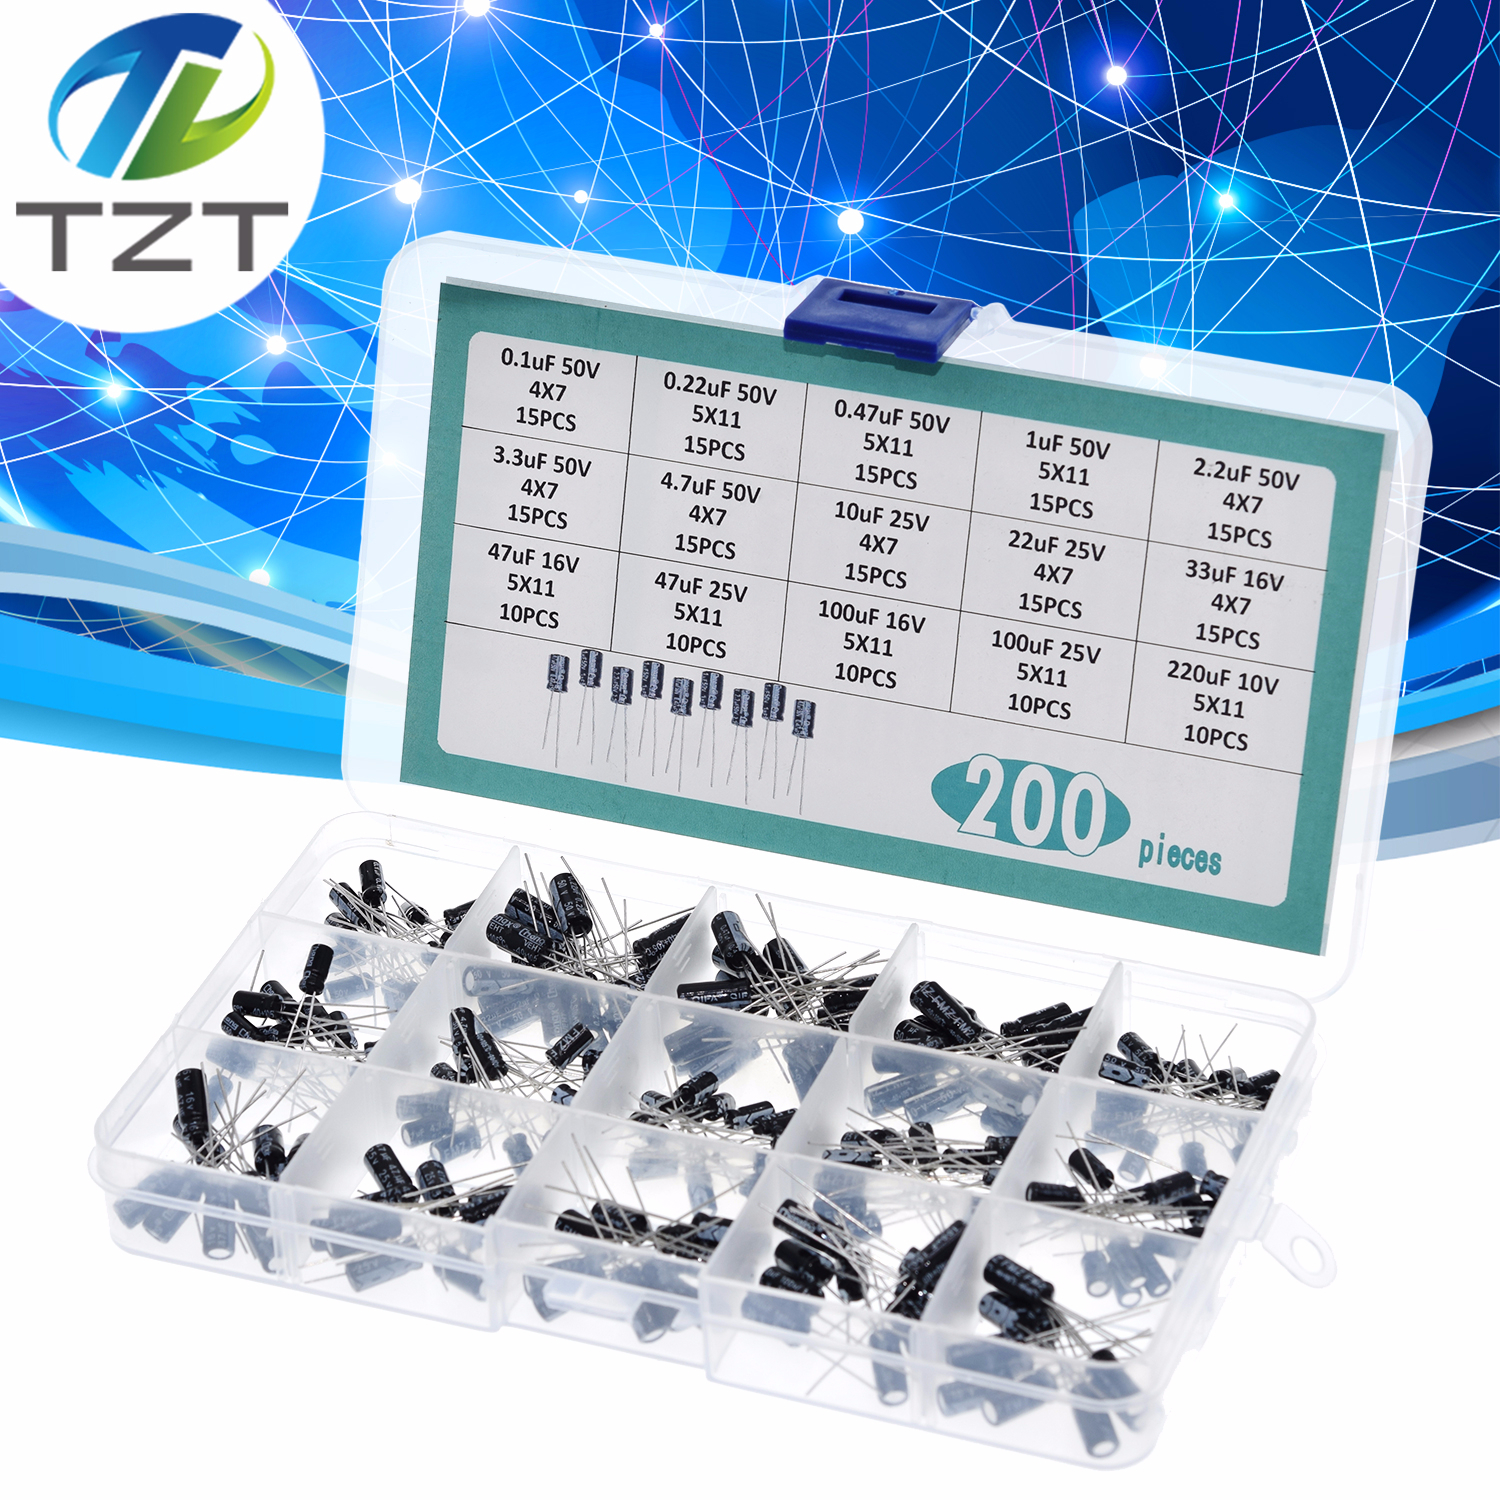 200pcs DIY 15 Values 0.1uF-220uF Electrolytic Capacitor Assortment Kit with Box